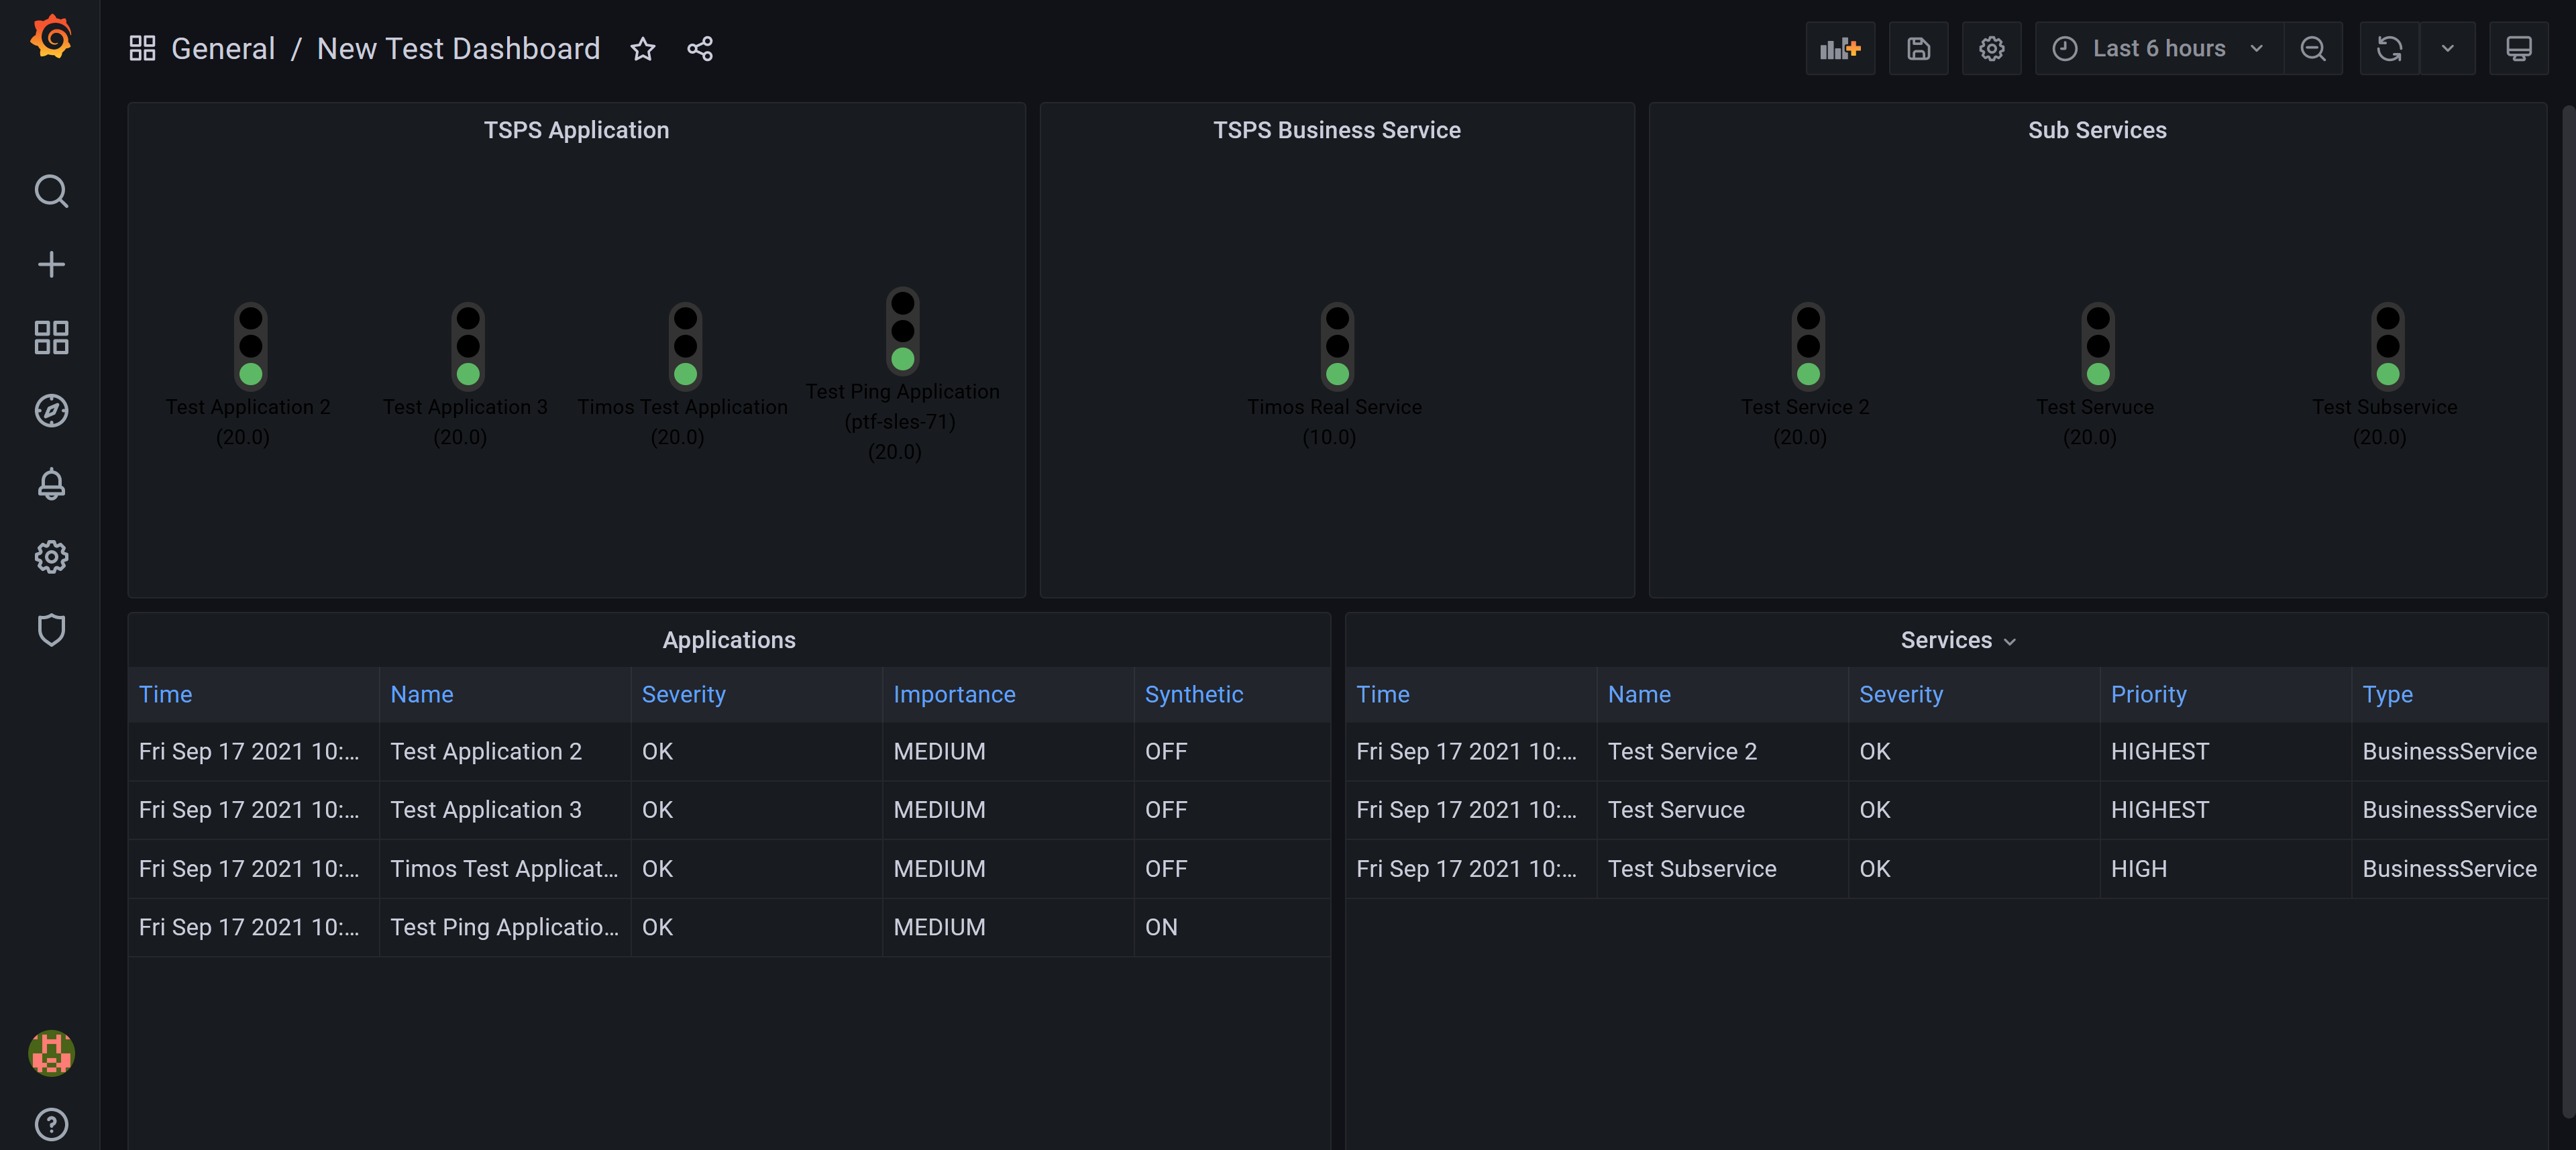 Applications and Services Dashboard